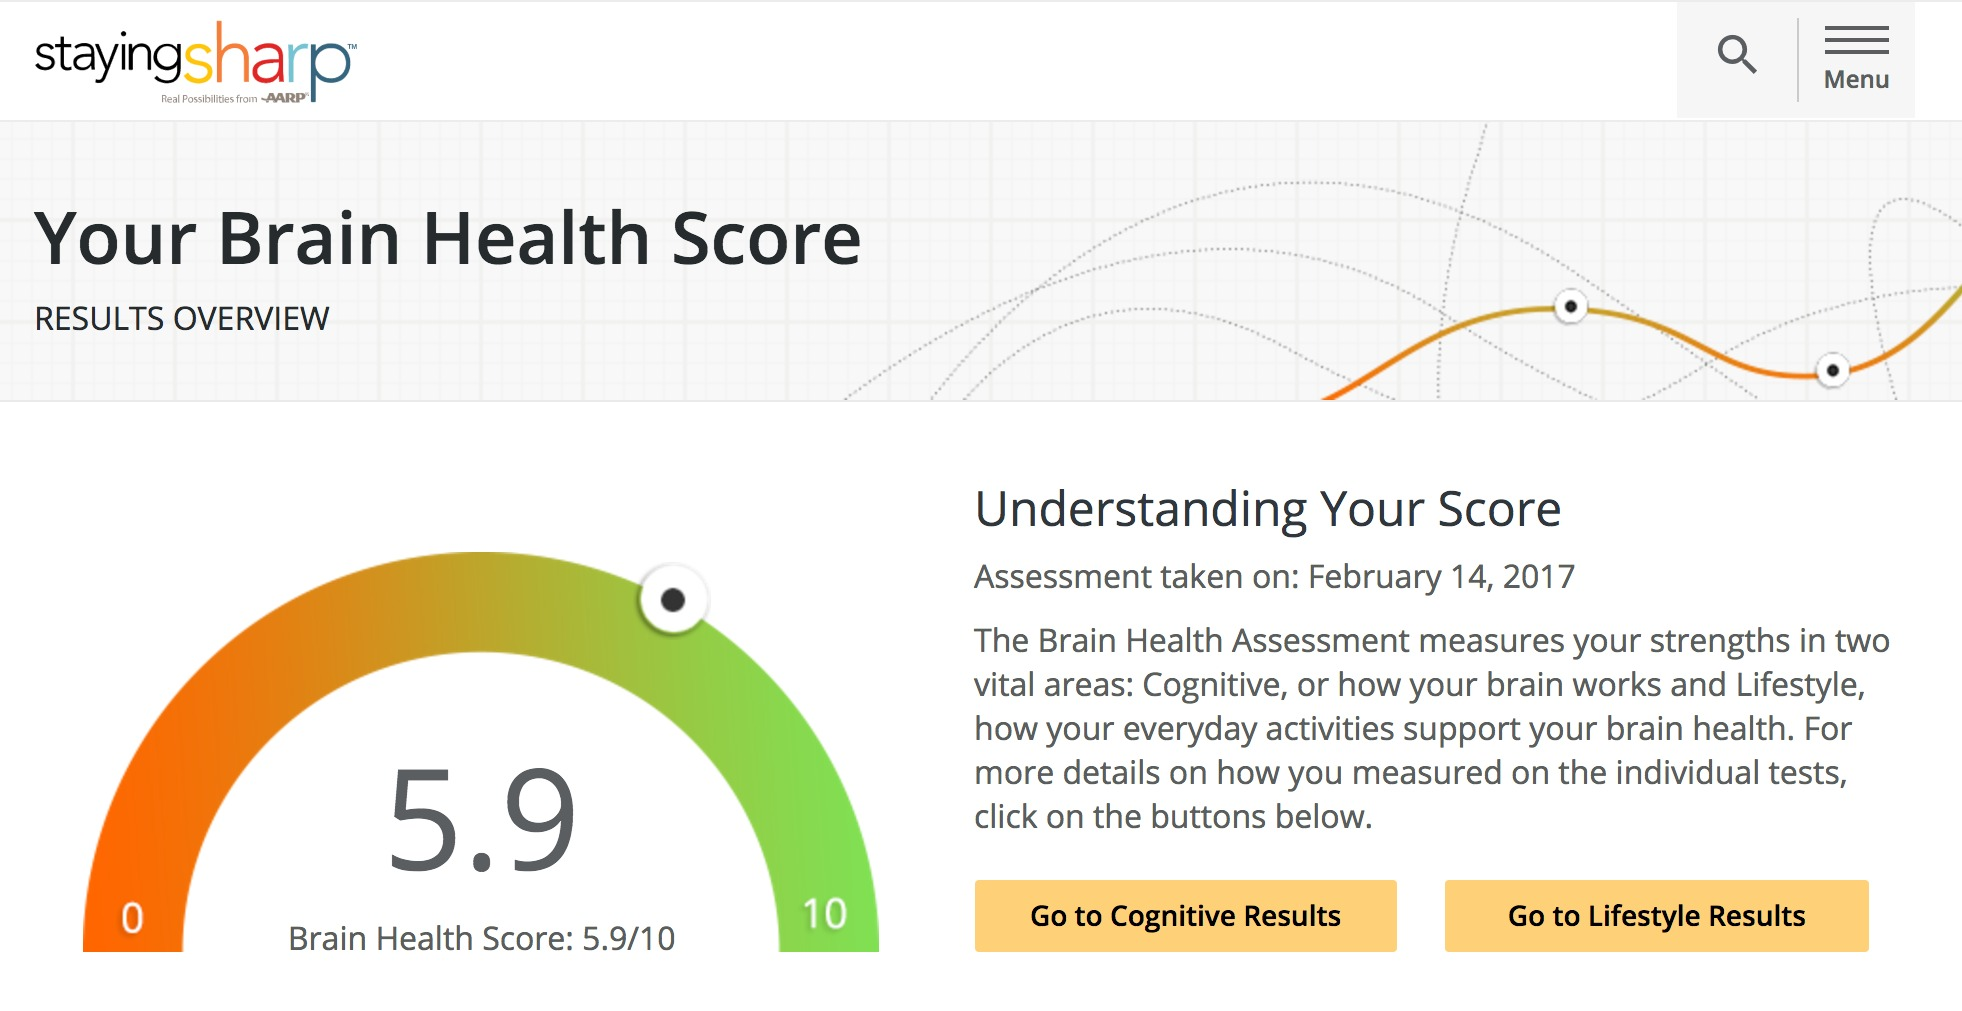 Learn how you can improve your brain health in this AARP Staying Sharp Brain Health Subscription Review.